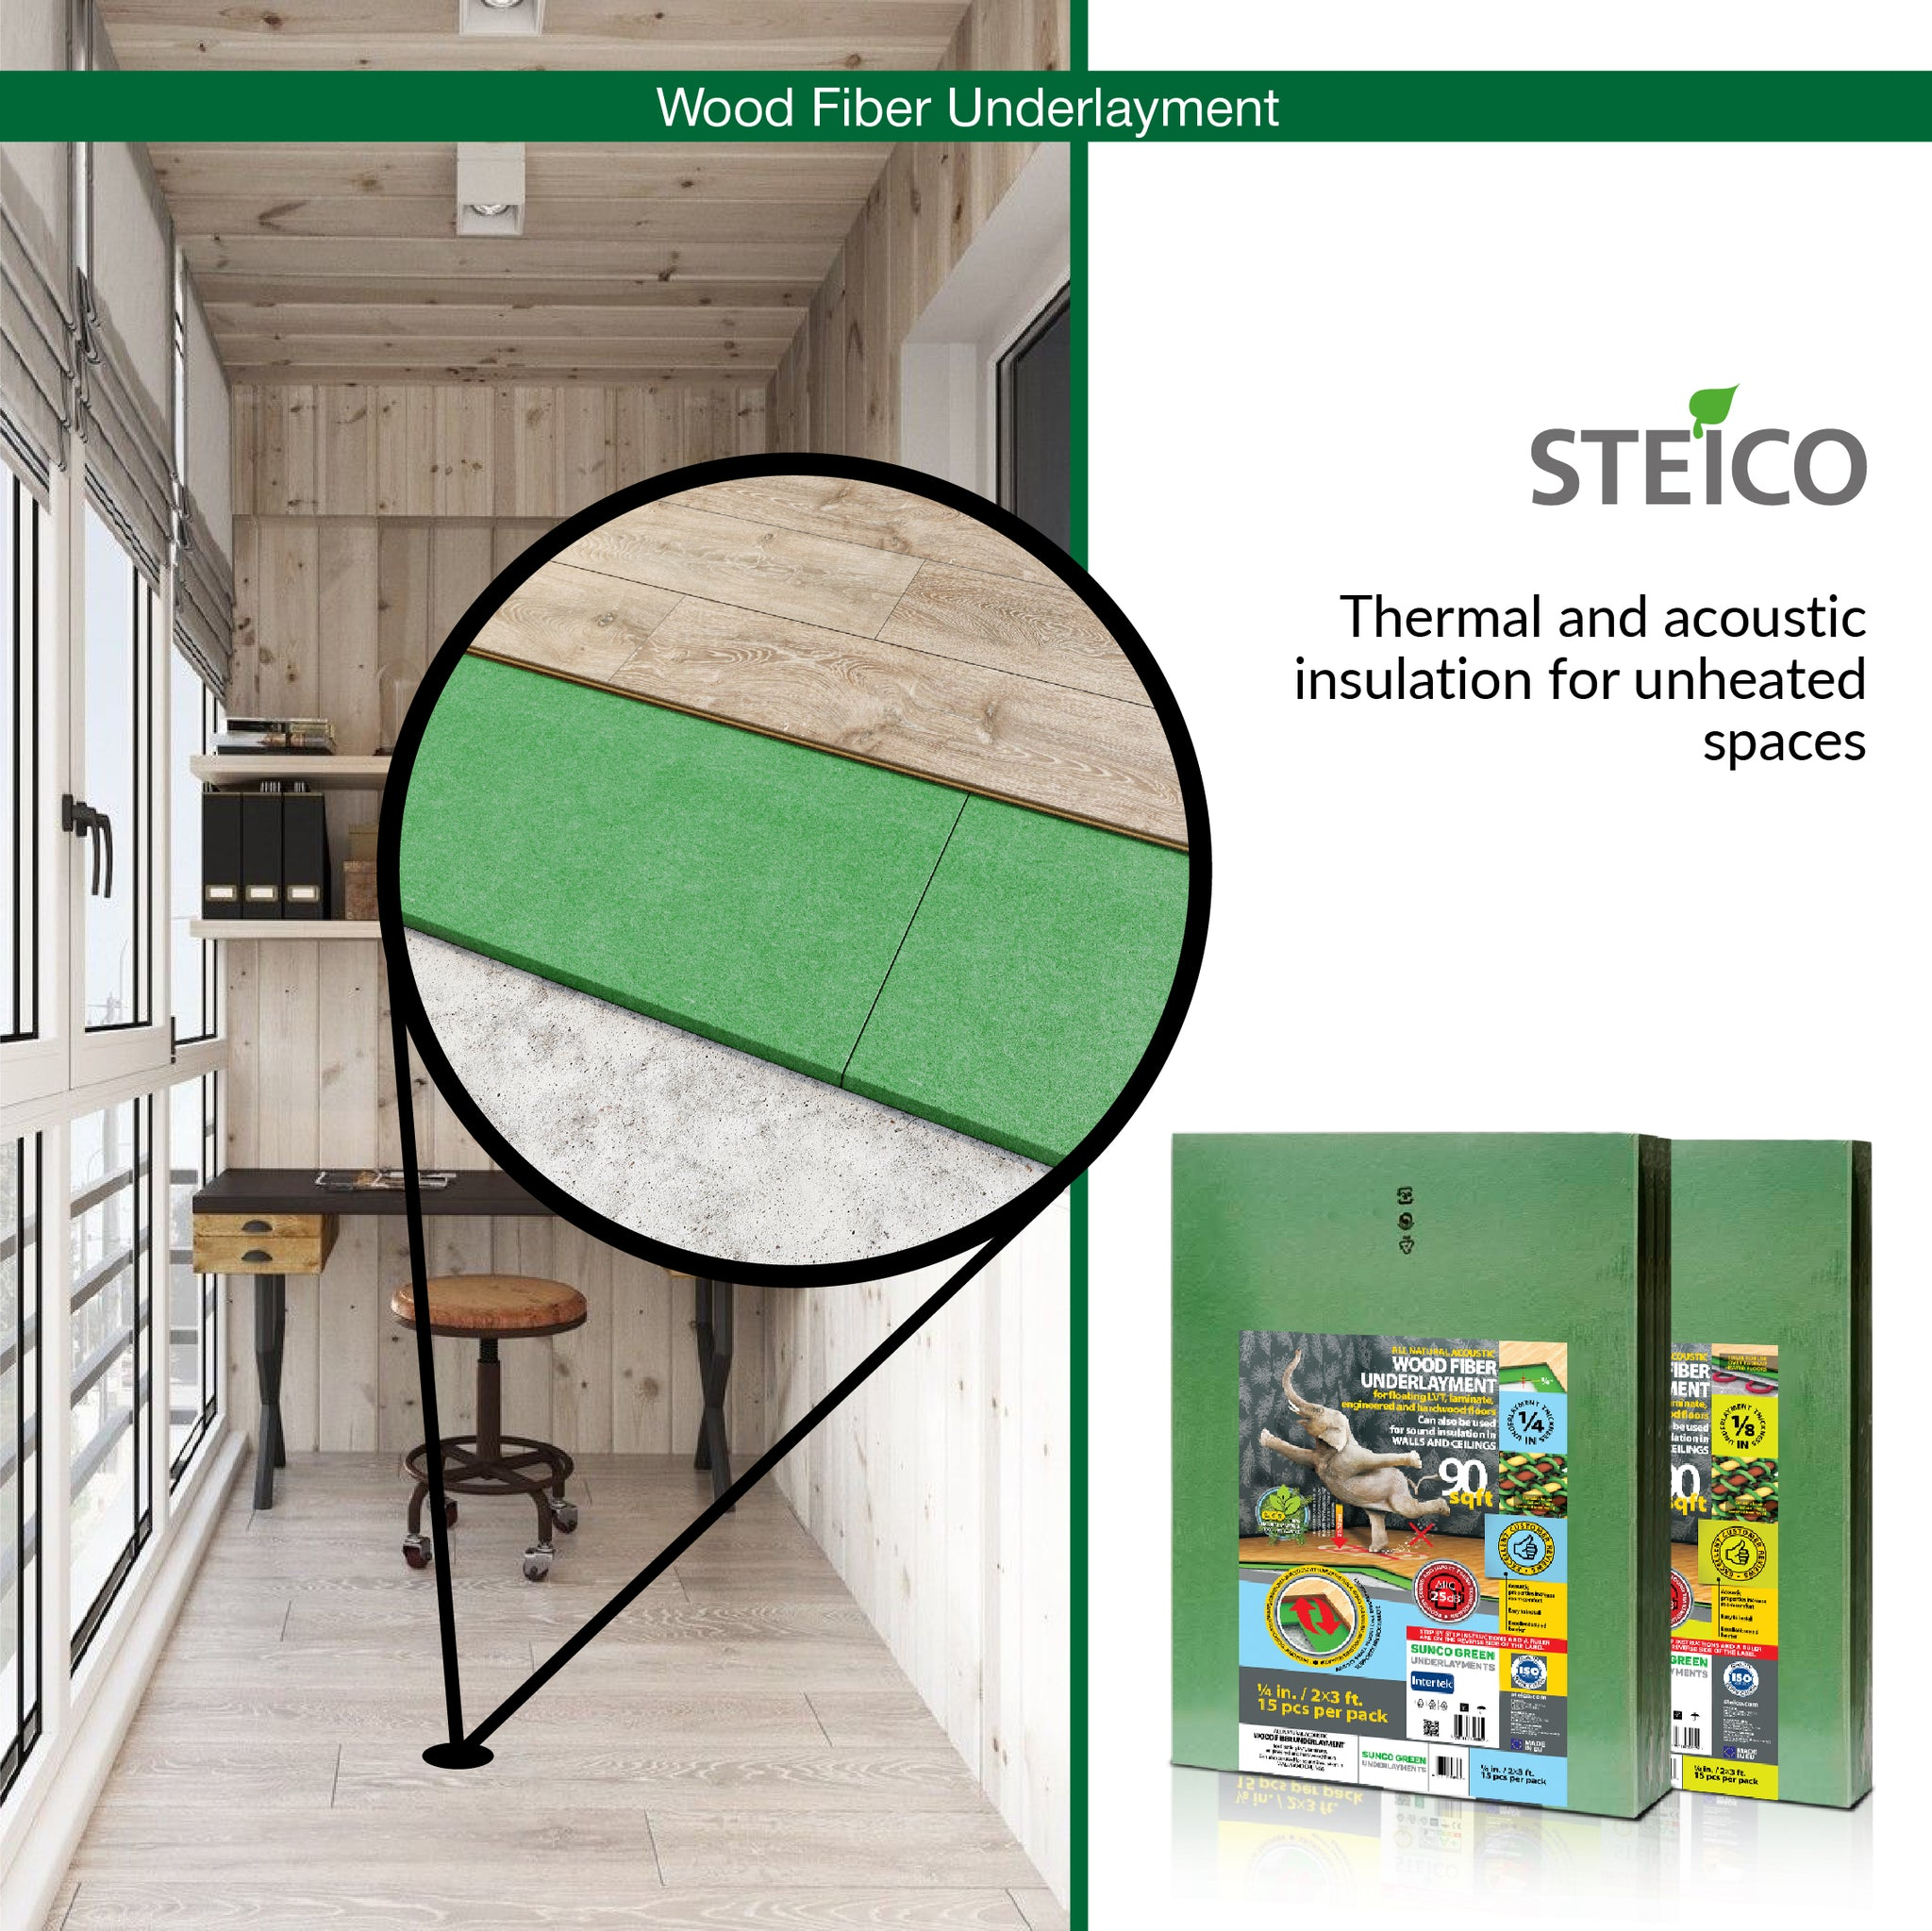 STEICO WOOD FIBER UNDERLAYMENT 1/8 Inch 3 mm 90 SqFt